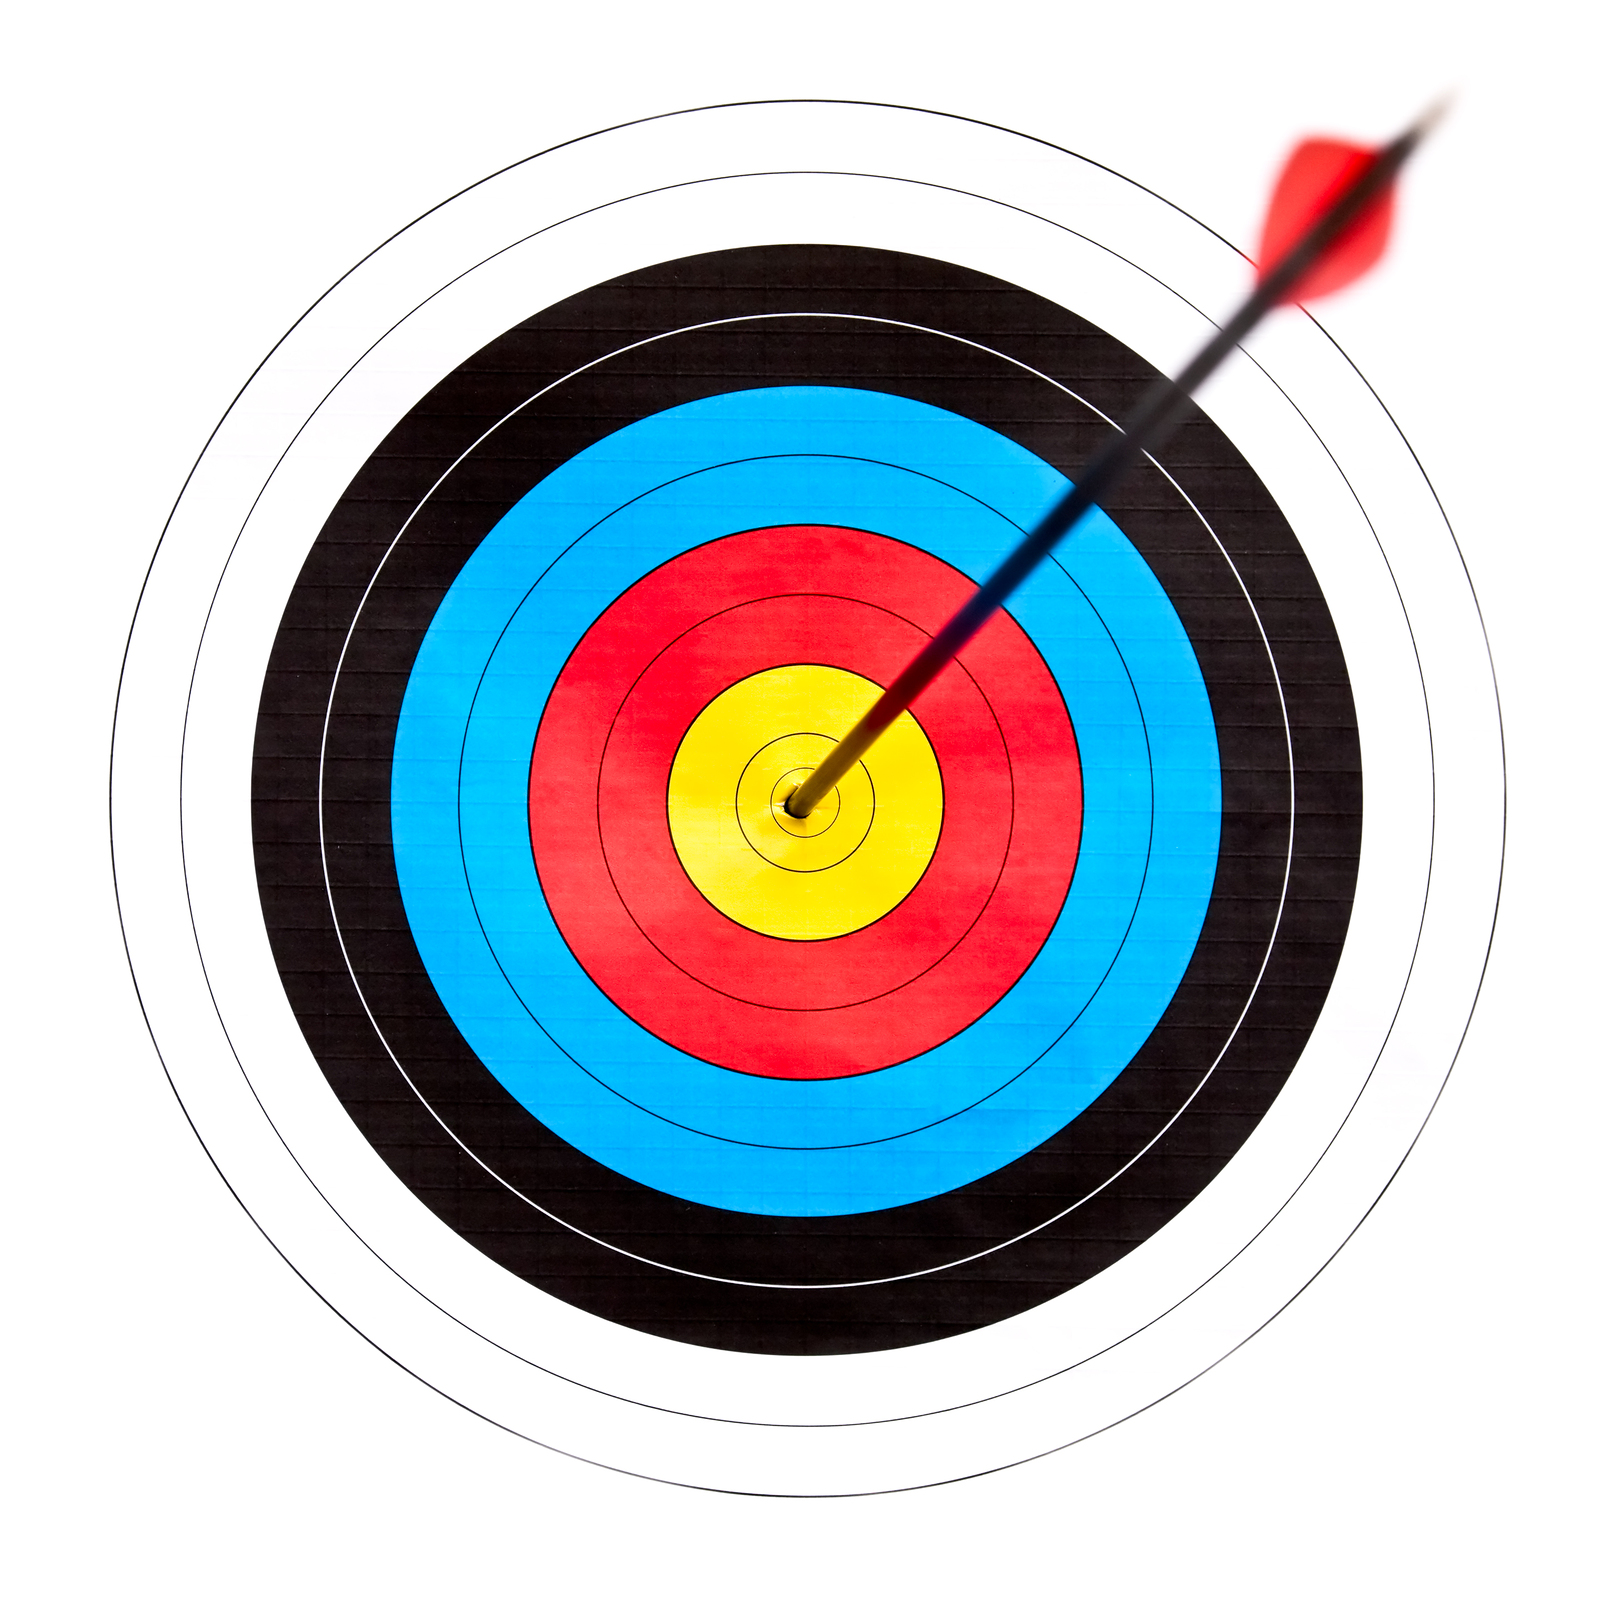 Archery Target Pictures Free Cliparts That You Can Download To You